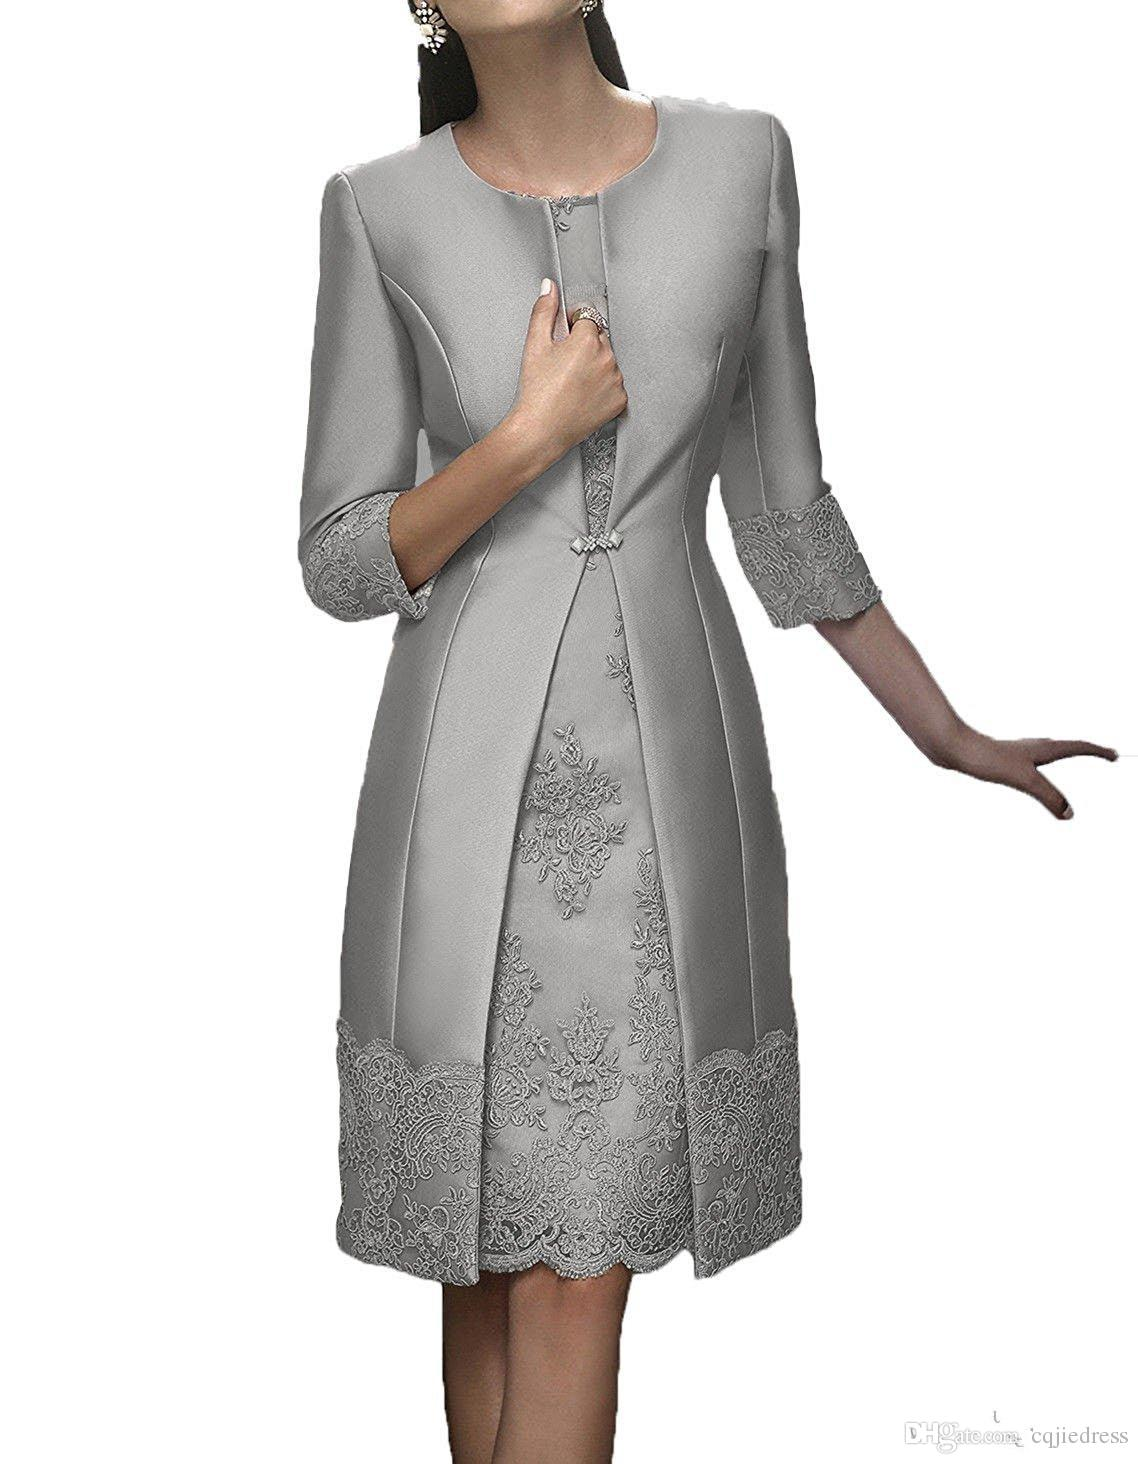 Elegant Sheath Short Mother Formal Wear With Jacket Evening Satin Lace Party Wedding Guest Dress 2018 Mother Of The Bride Dress Suit Gowns